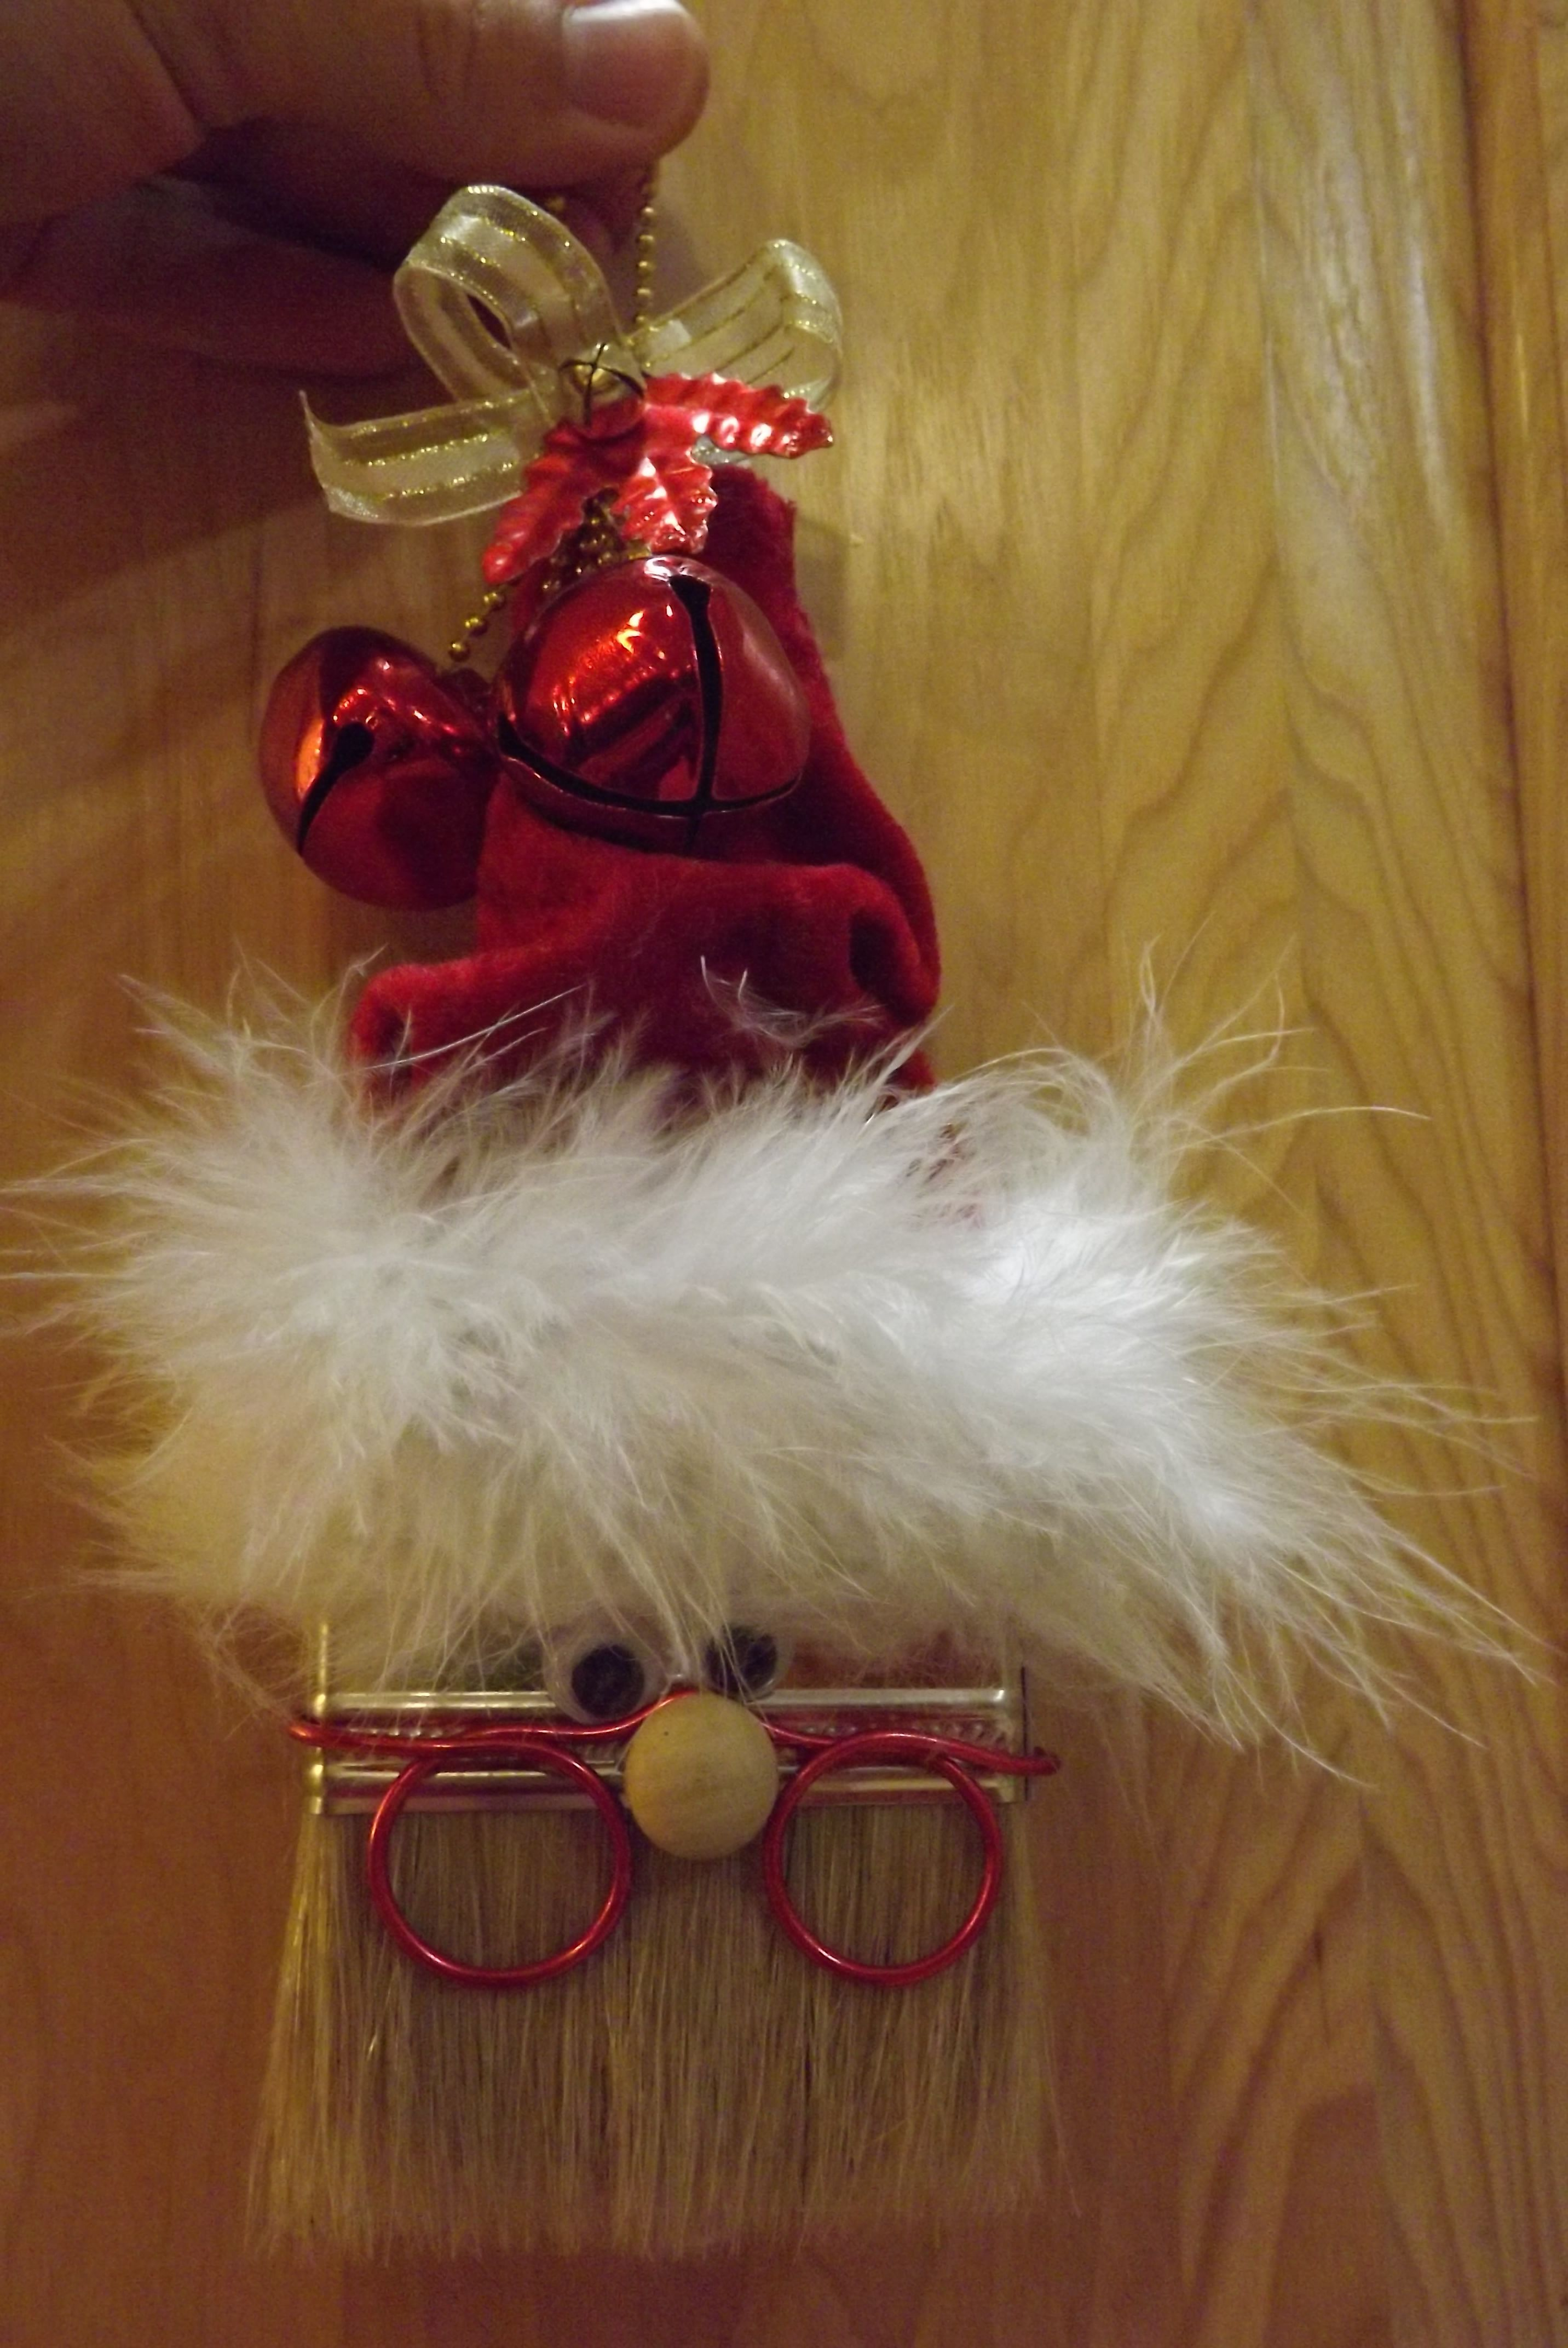 Bristle brush ornaments - Homemade Christmas Ornament Santa Claus Made From A Paint Brush